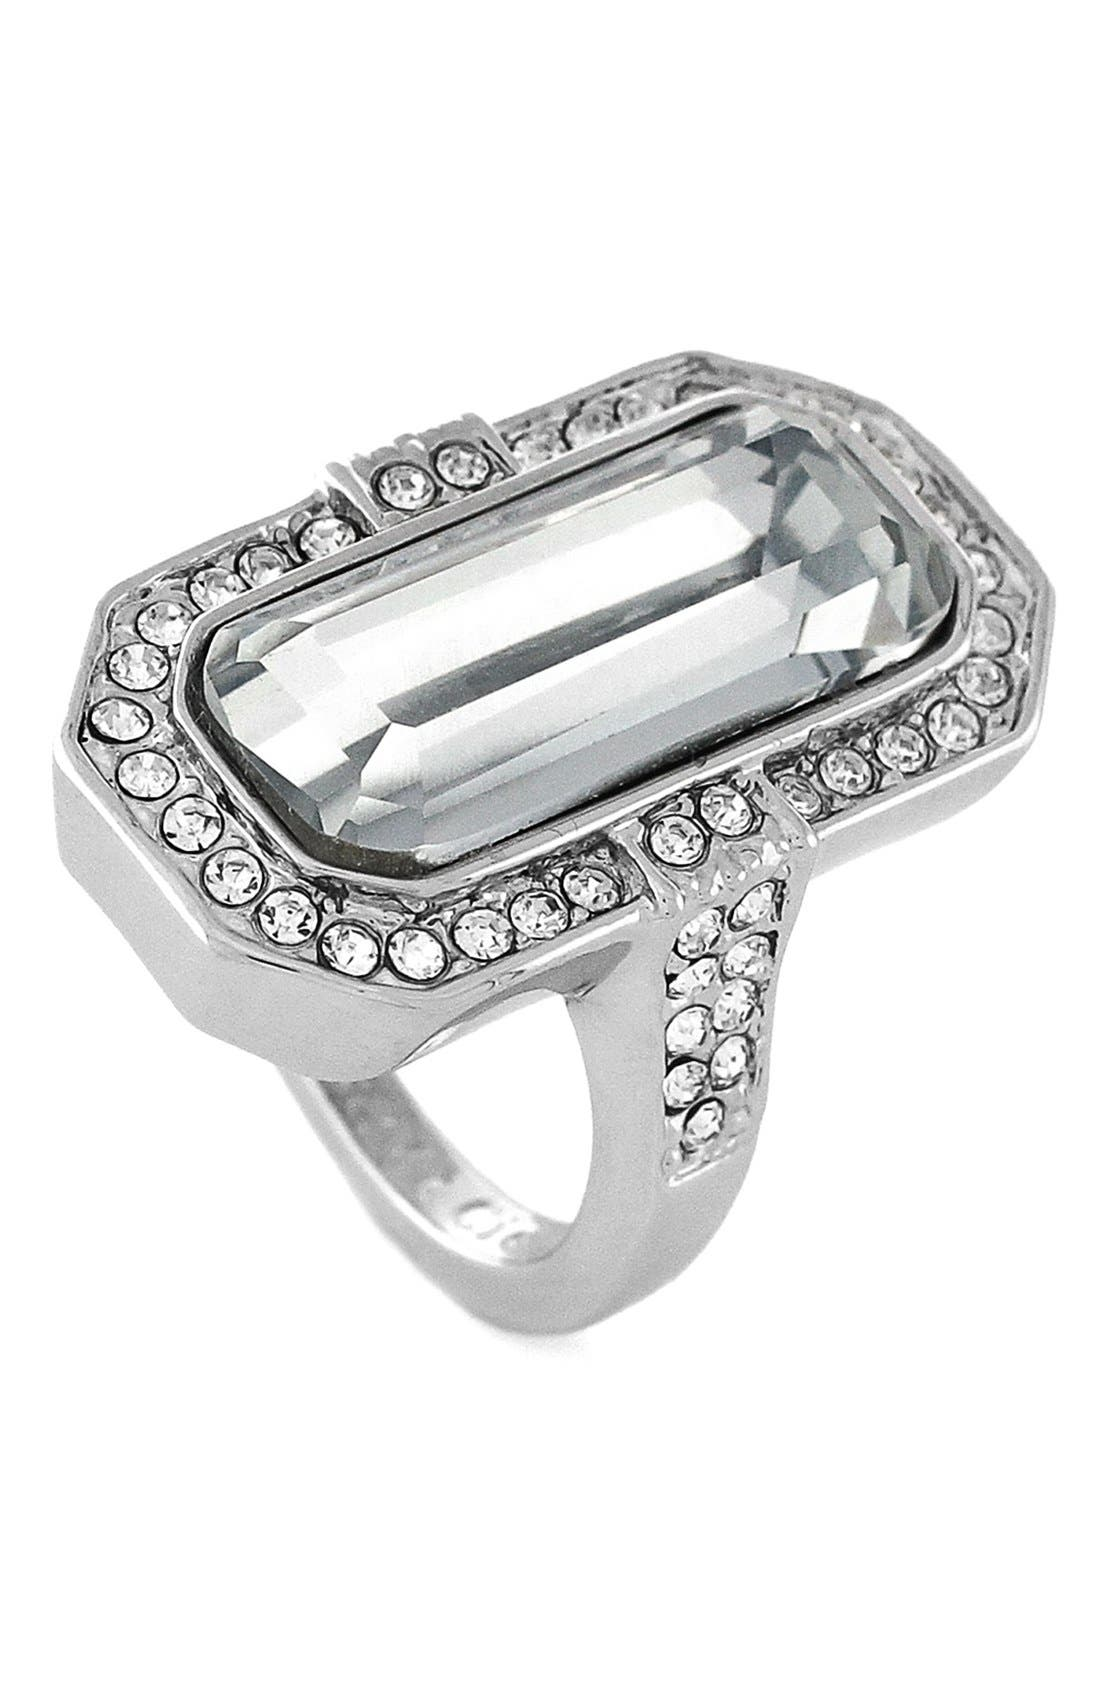 Main Image - Louise et Cie Crystal Cocktail Ring